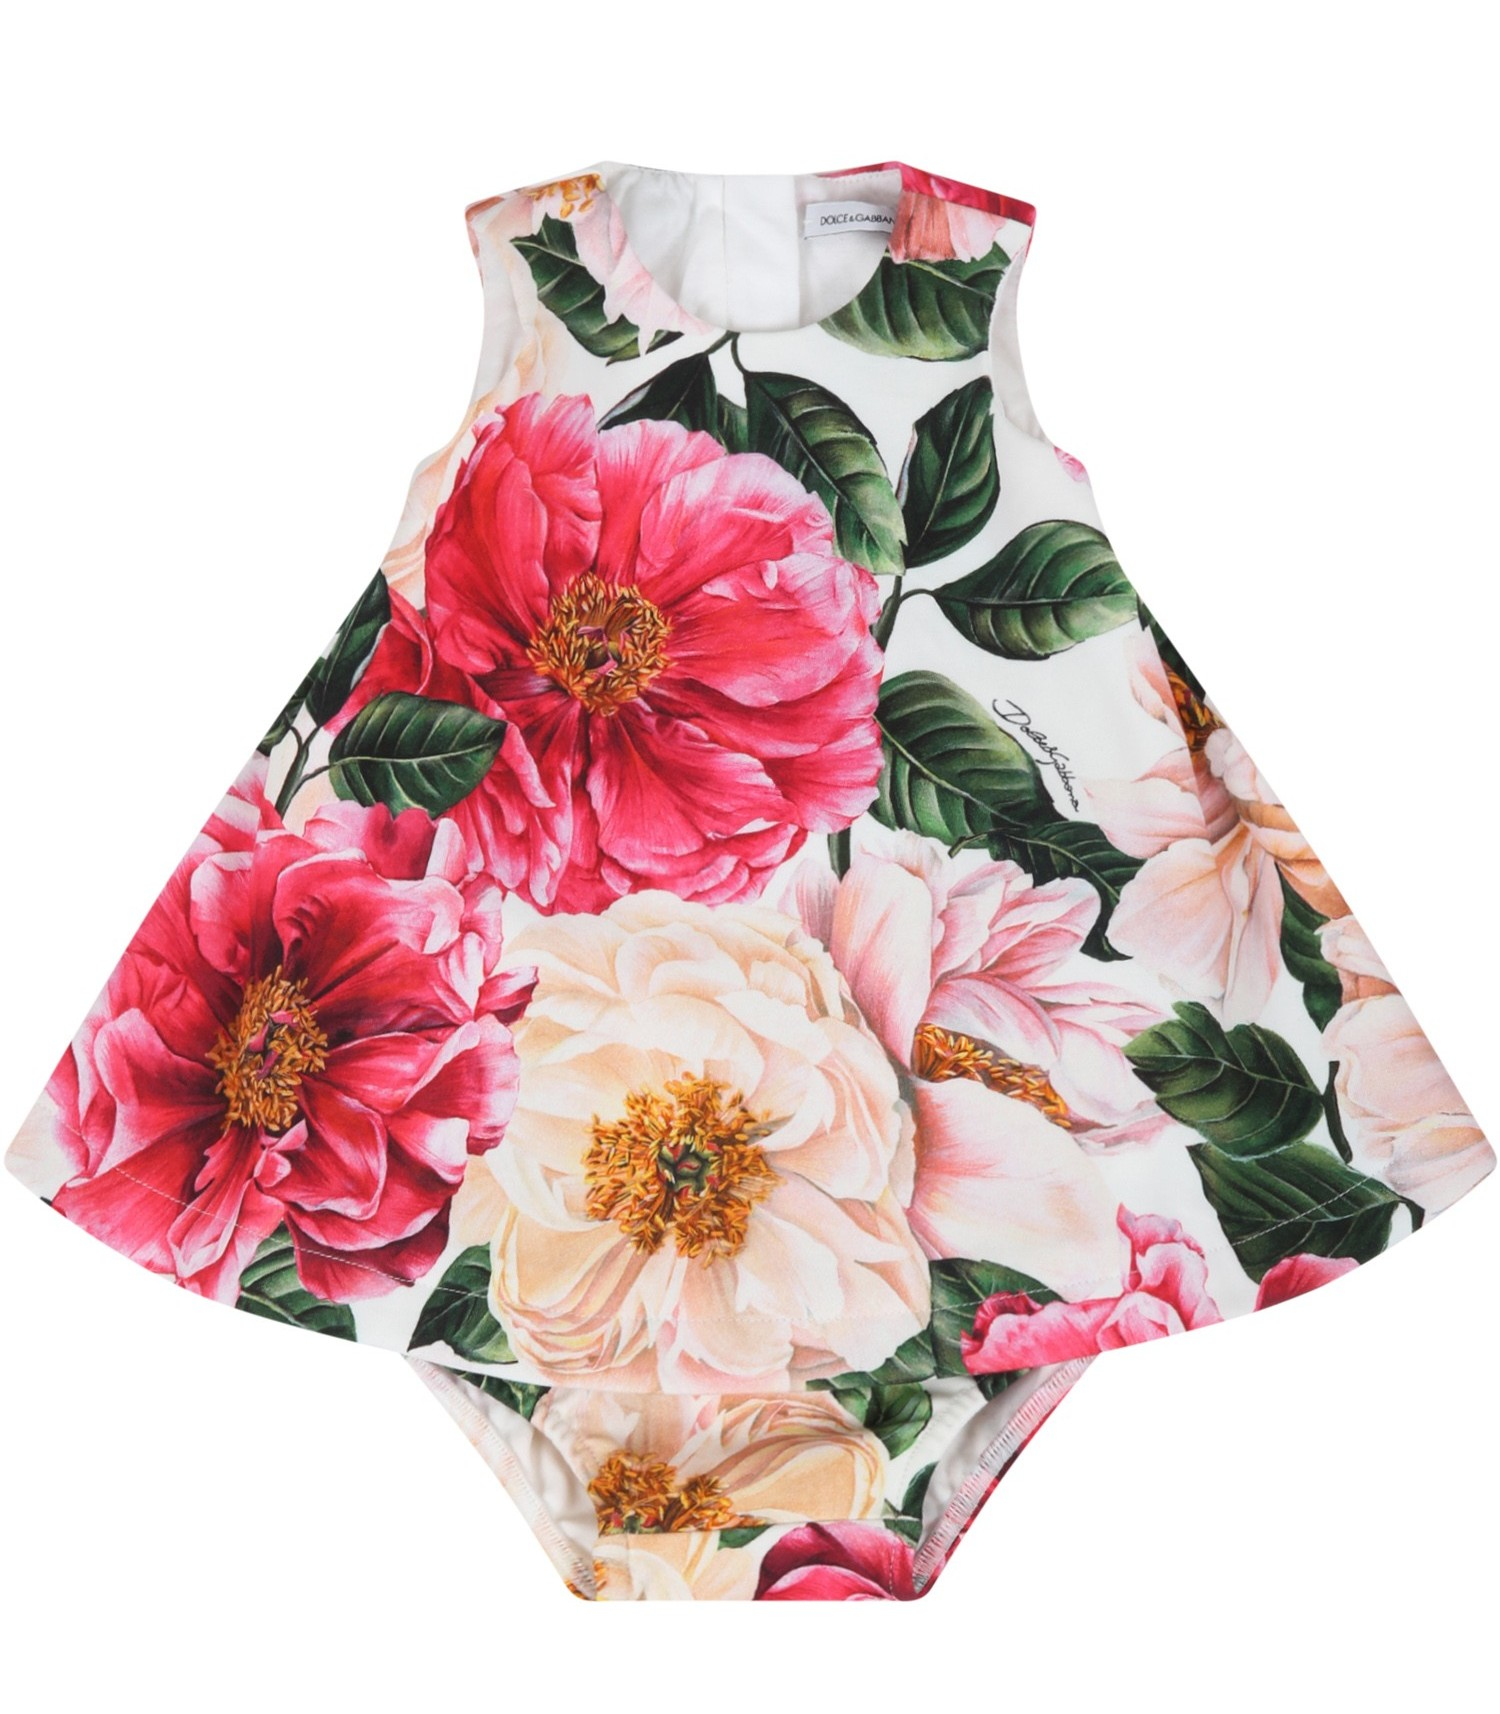 Dolce & Gabbana Kids White dress for babygirl with camellias